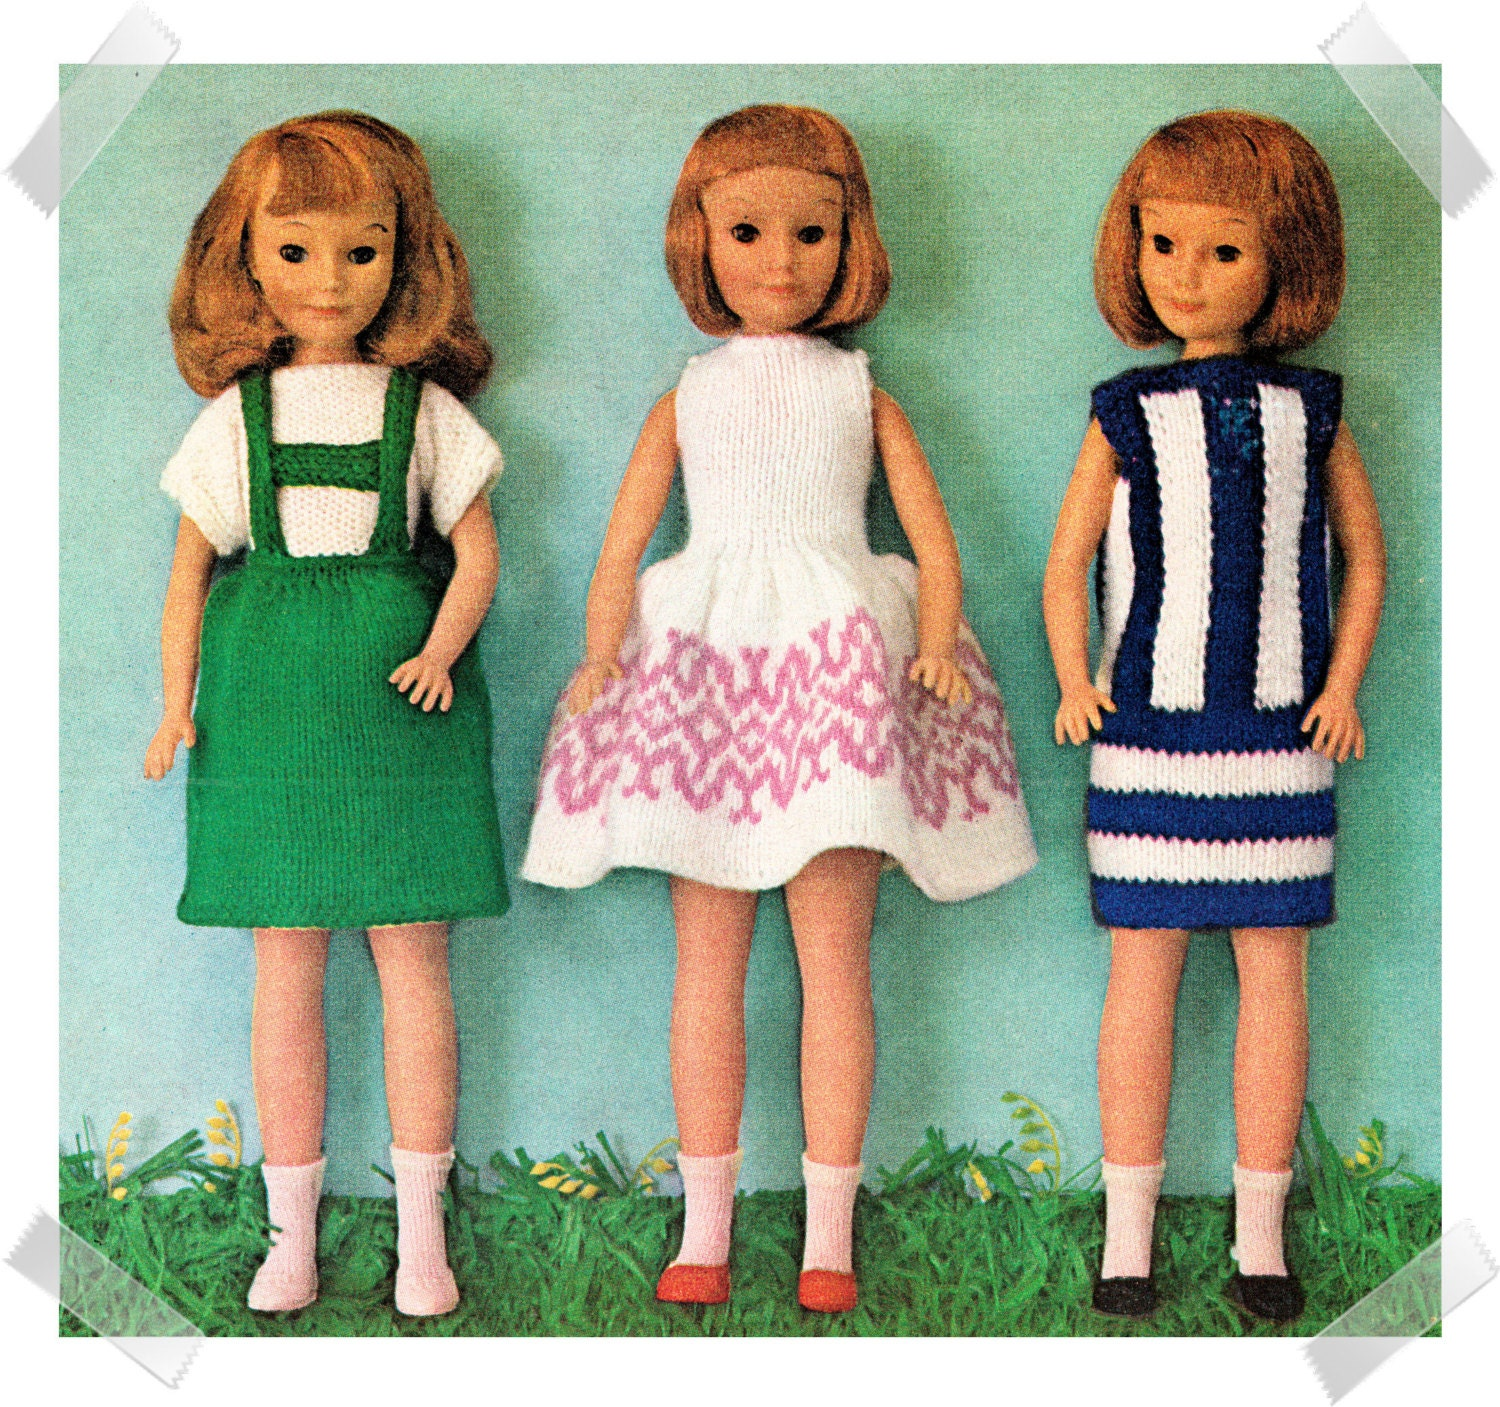 Barbie Knitting Patterns To Download : Instant Download PDF Sixties KNITTING PATTERN to make Barbie